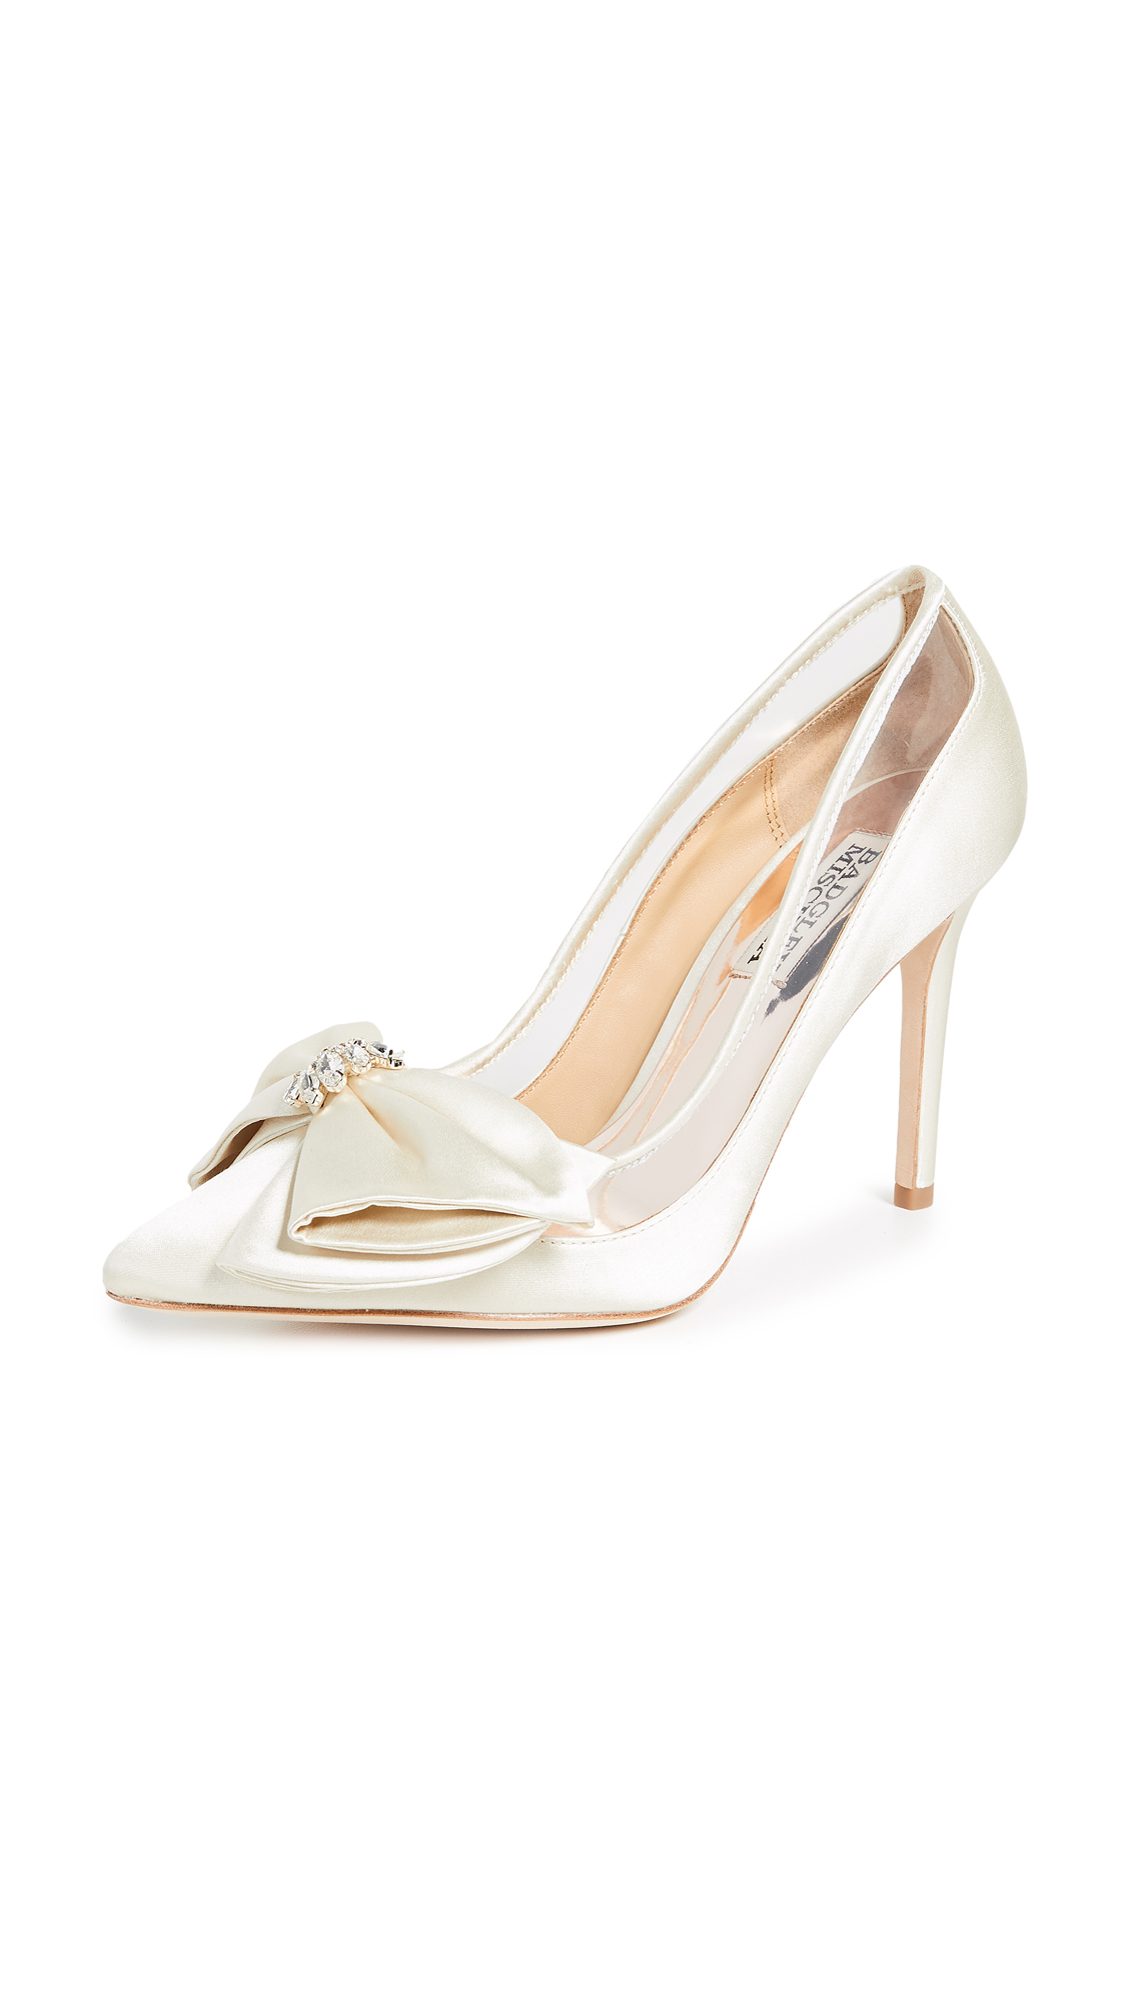 Badgley Mischka Frances Point Toe Pumps